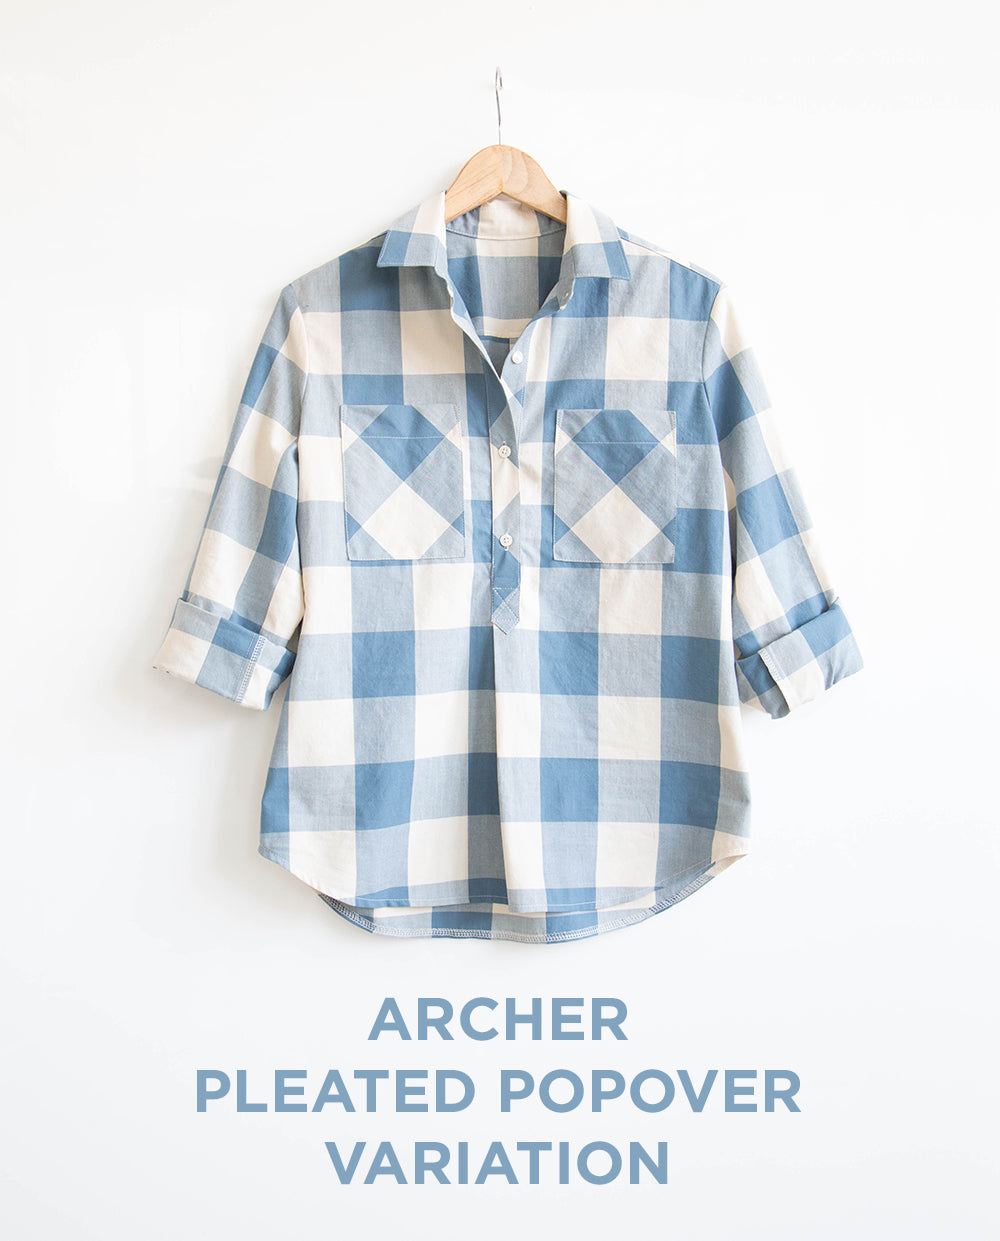 Archer Popover Placket Pleat Variation from Grainline Studio